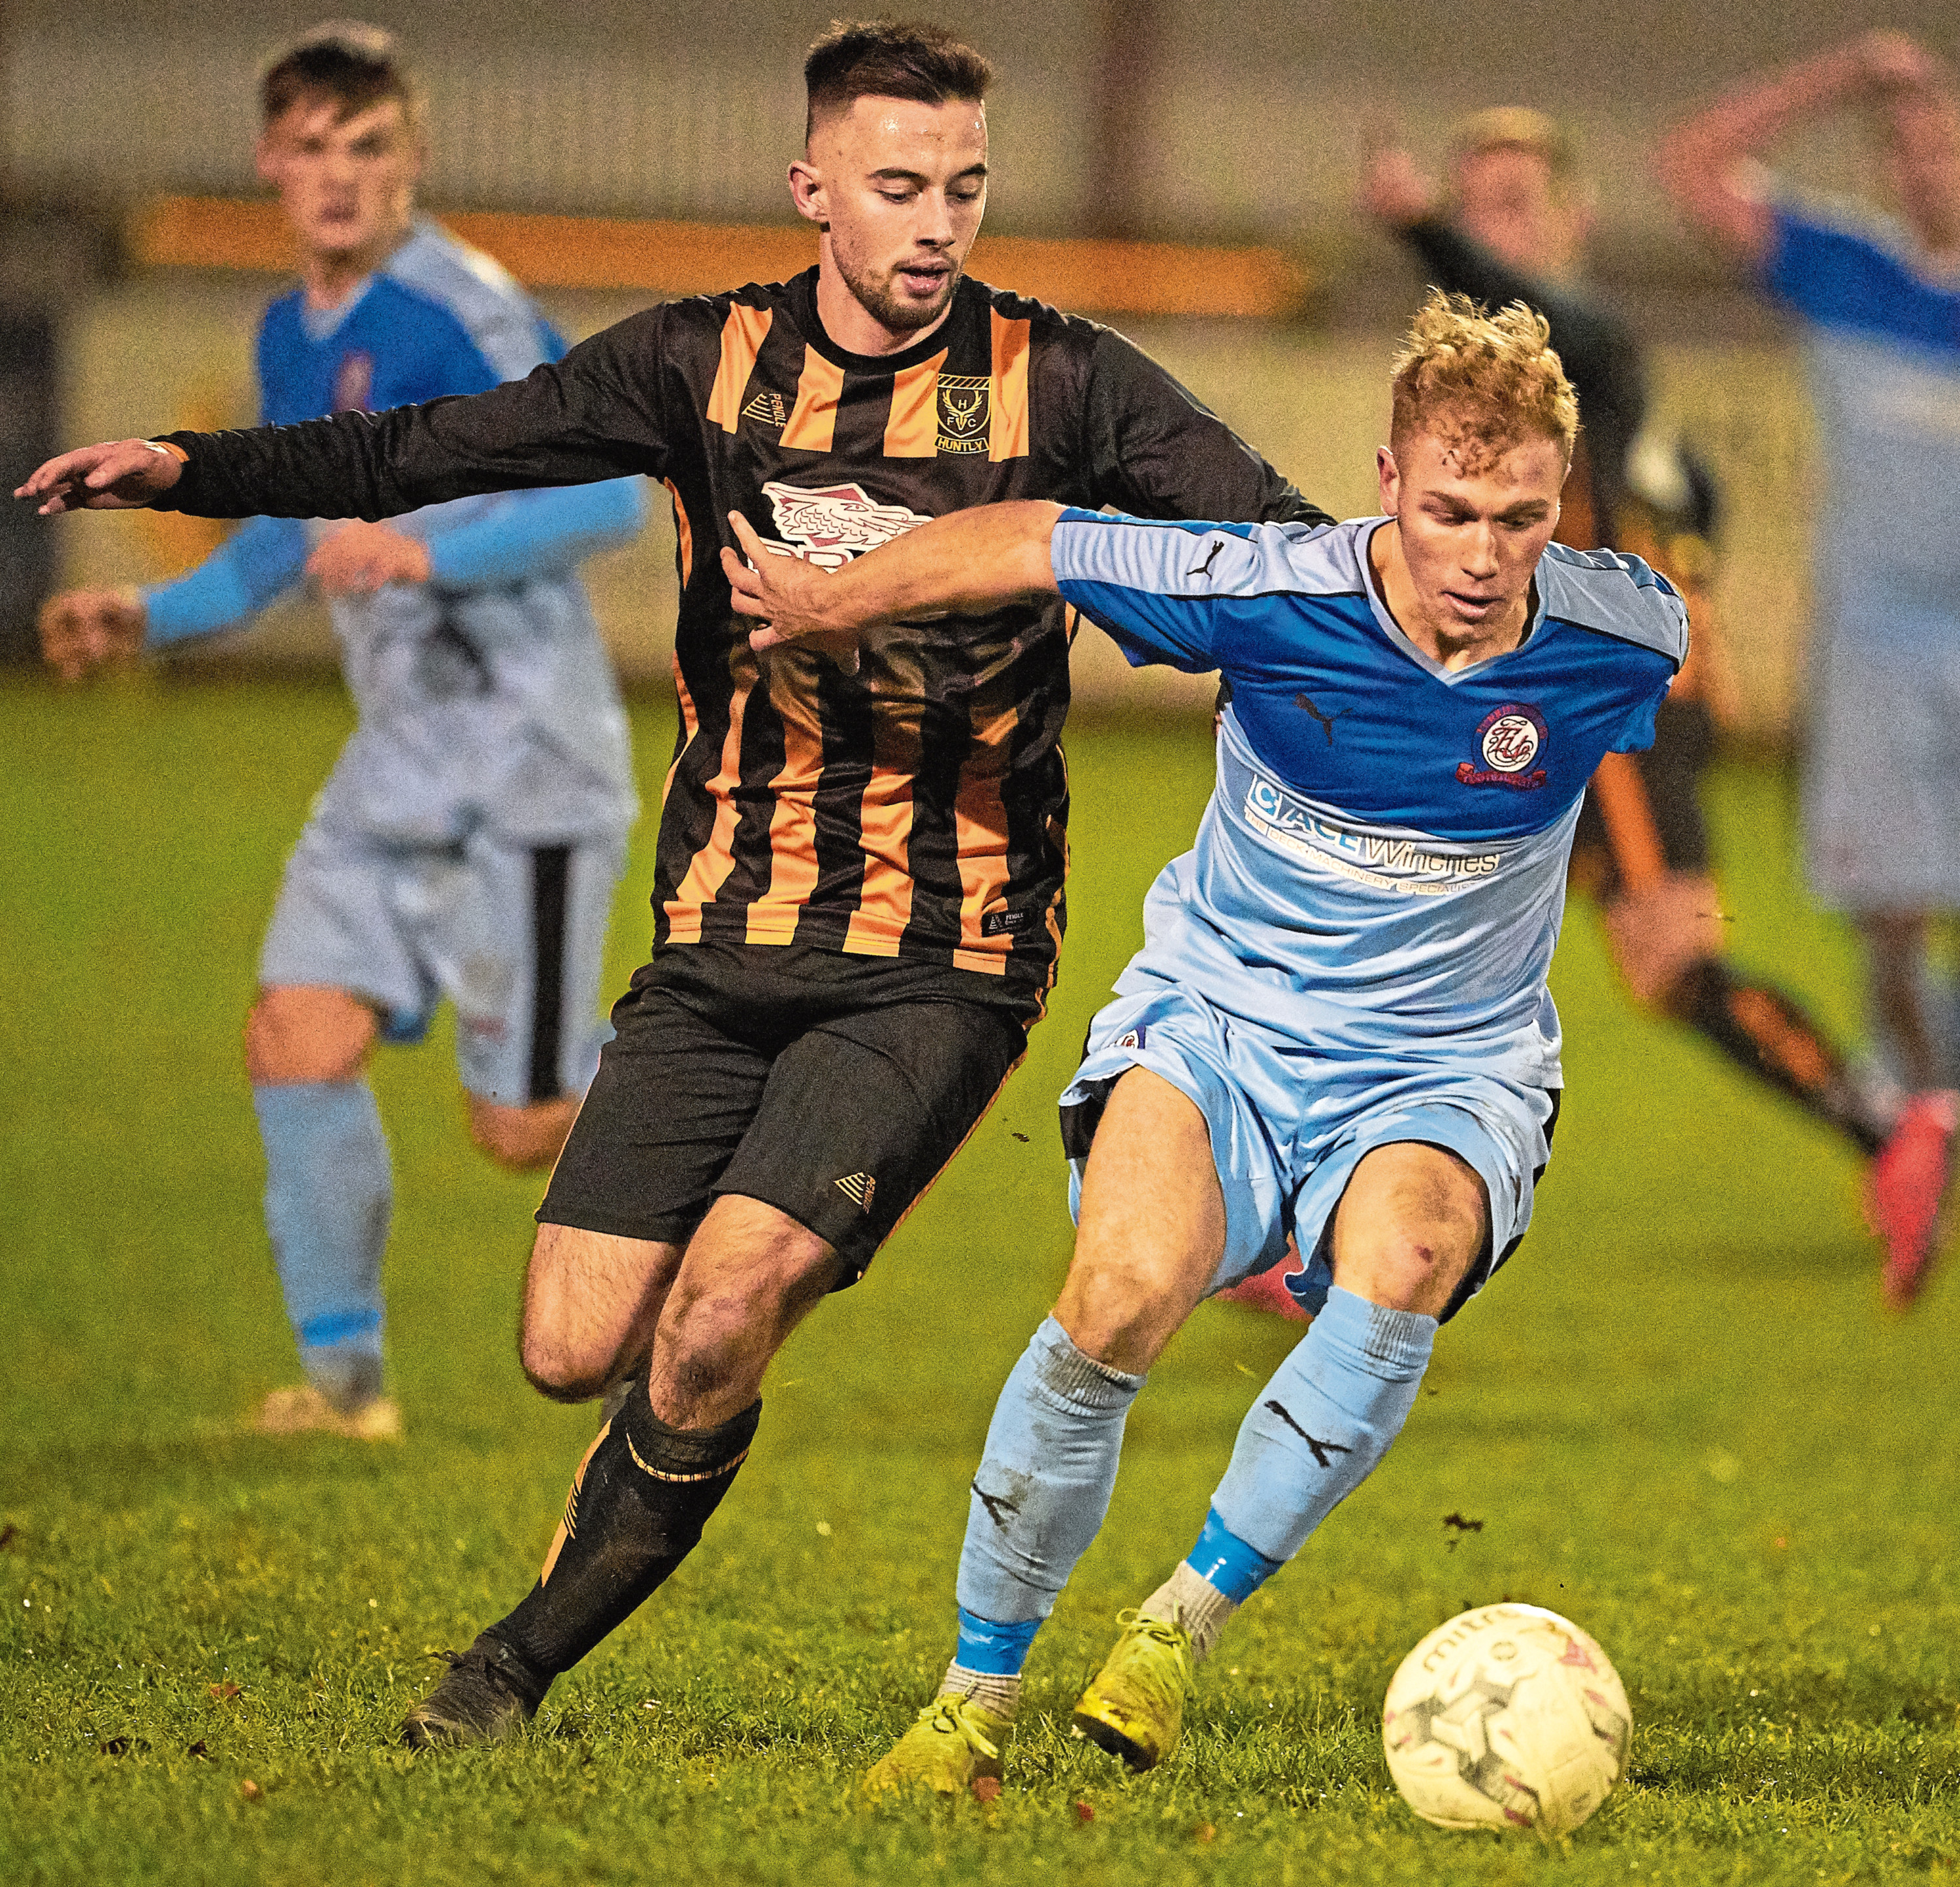 Liam MacDonald, left, playing for Huntly